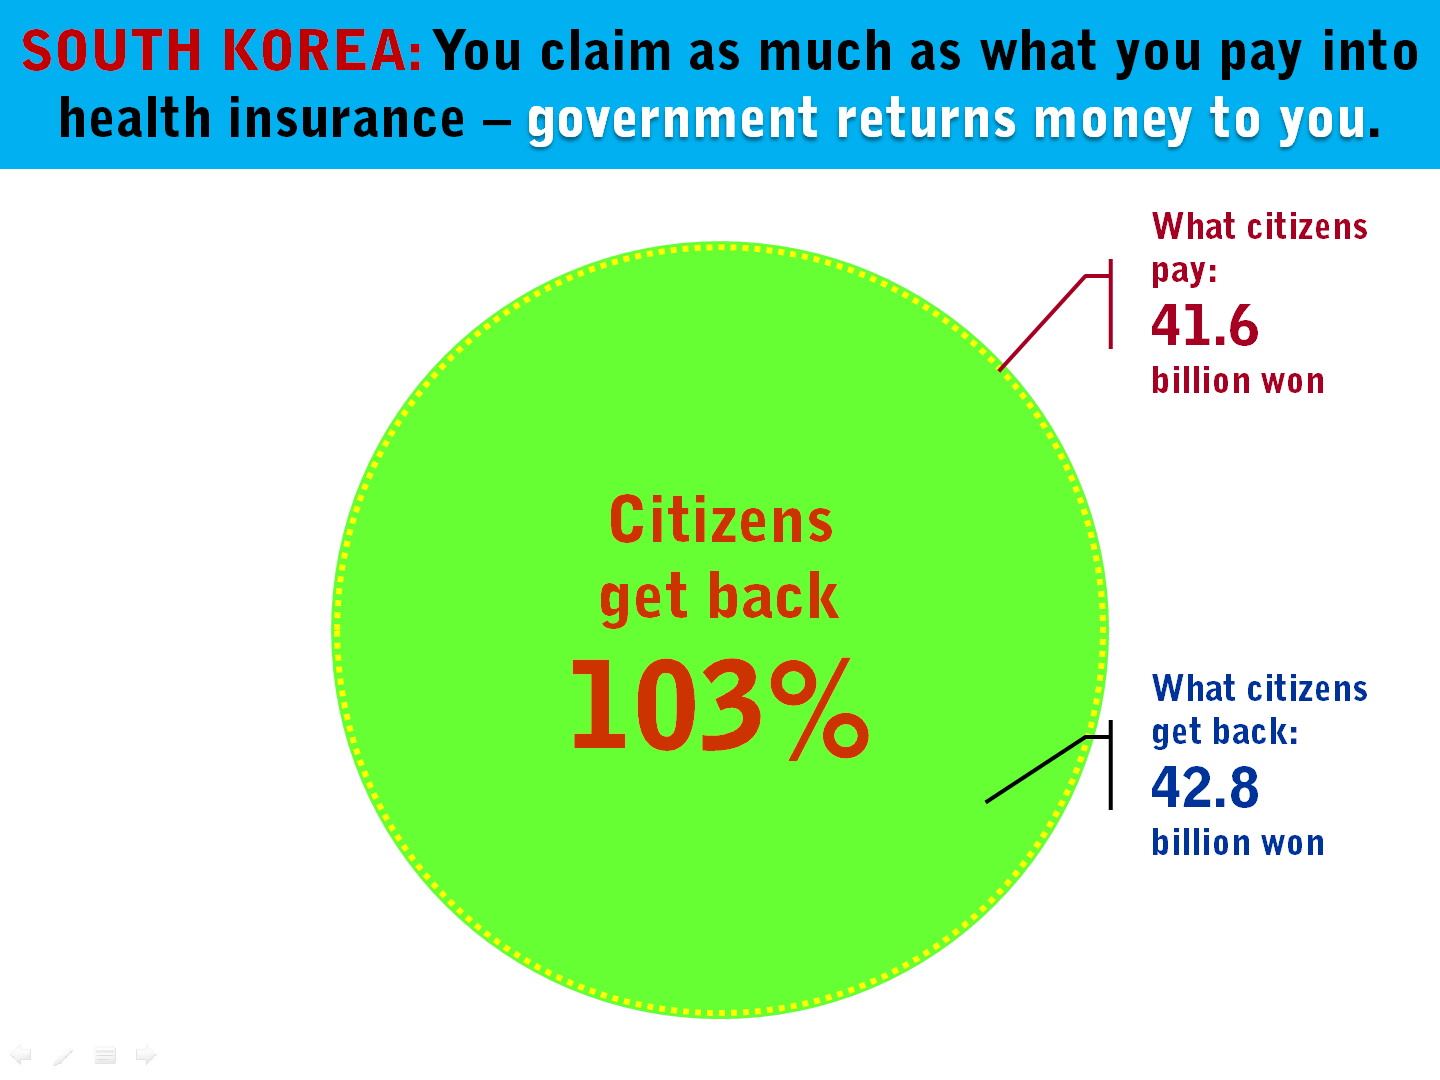 4 South Korea Contribution Claim Health Insurance.png